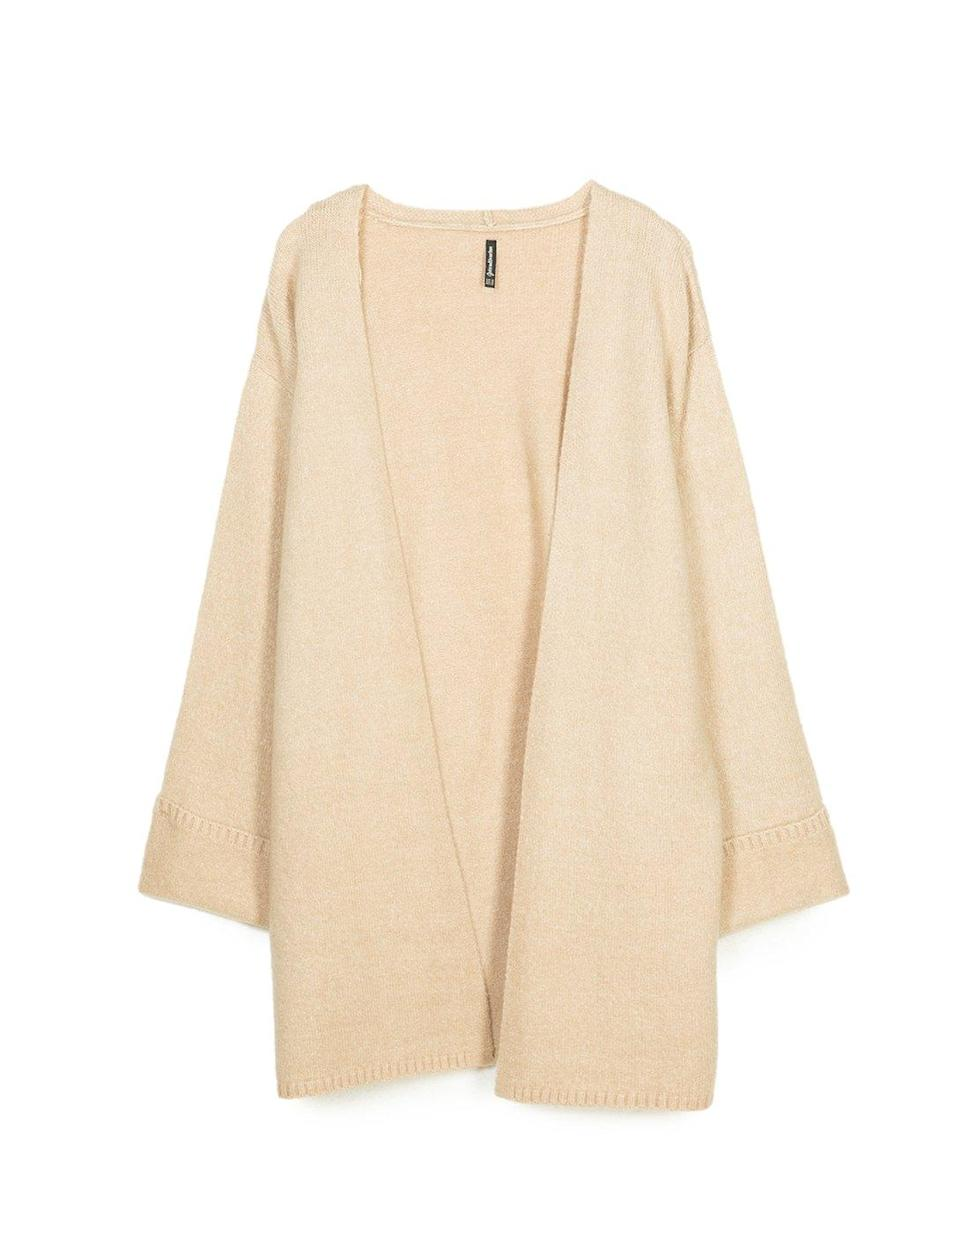 """<p>Why not tackle two trends in one and opt for a kimono-inspired knit this season? <em><a rel=""""nofollow noopener"""" href=""""https://www.stradivarius.com/gb/woman/clothing/knitwear/view-all/cardigan-with-kimono-sleeves-c1718564p300398009.html?colorId=210&style=05"""" target=""""_blank"""" data-ylk=""""slk:Stradivarius"""" class=""""link rapid-noclick-resp"""">Stradivarius</a>, £29.99</em> </p>"""